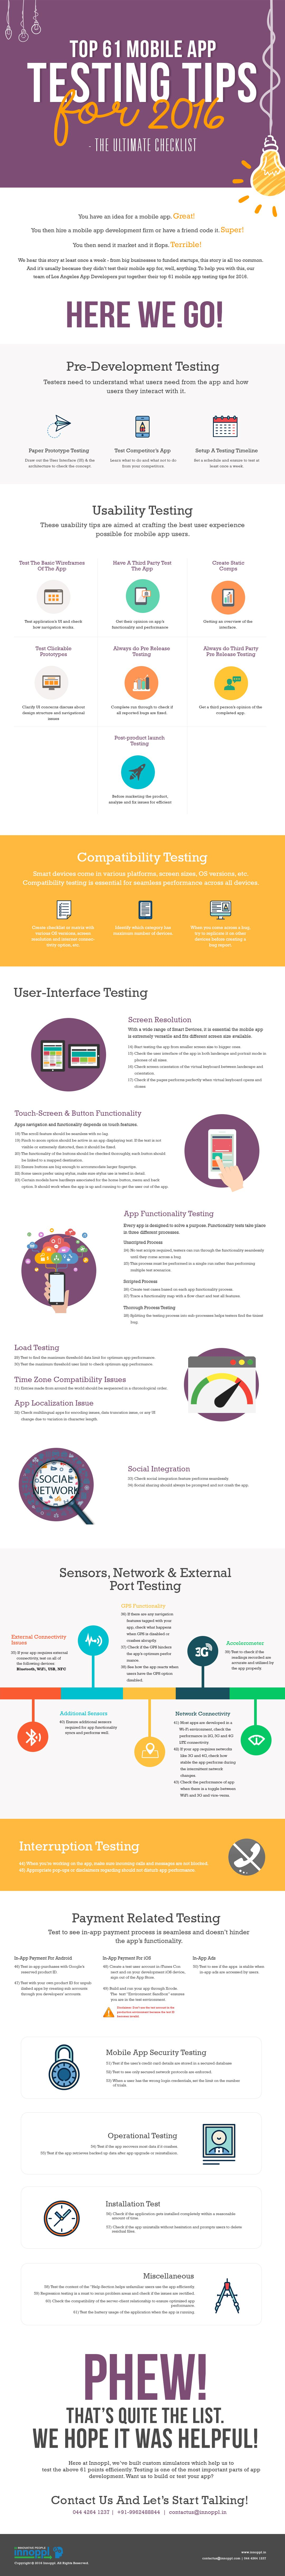 Top 61 Mobile App Testing Tips for 2016